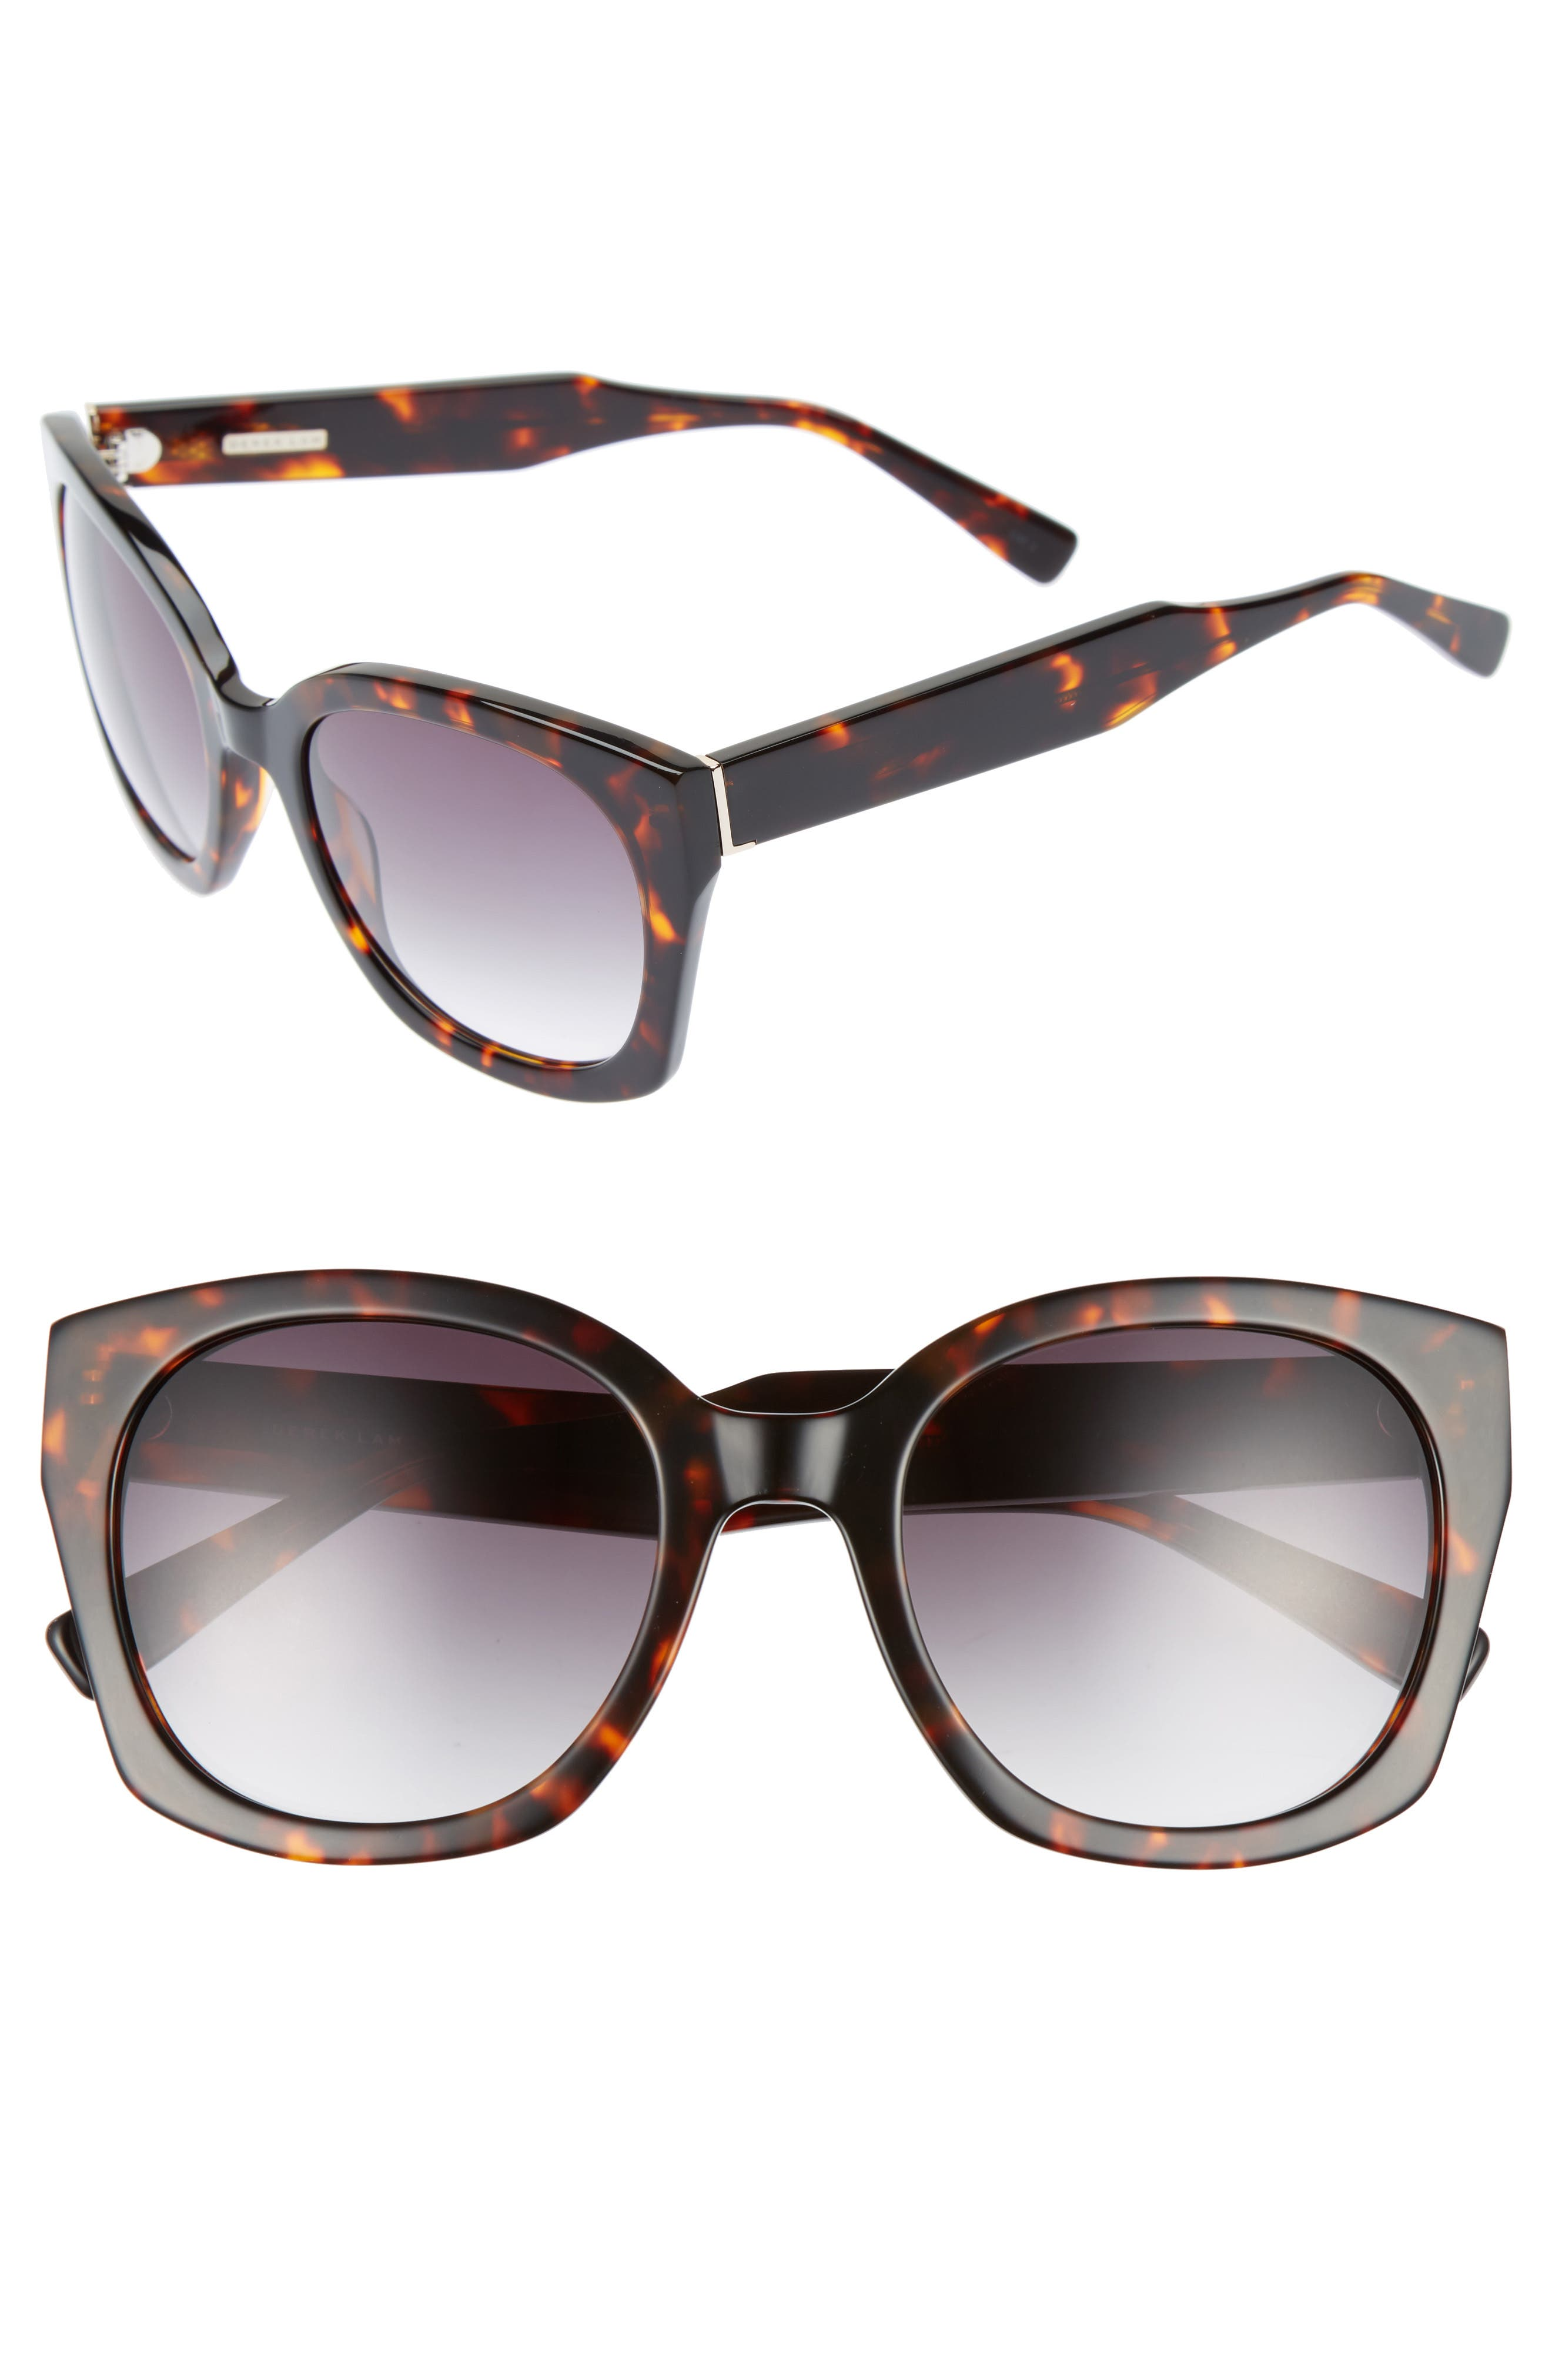 Sadie 54mm Sunglasses,                         Main,                         color, HAVANA TORTOISE